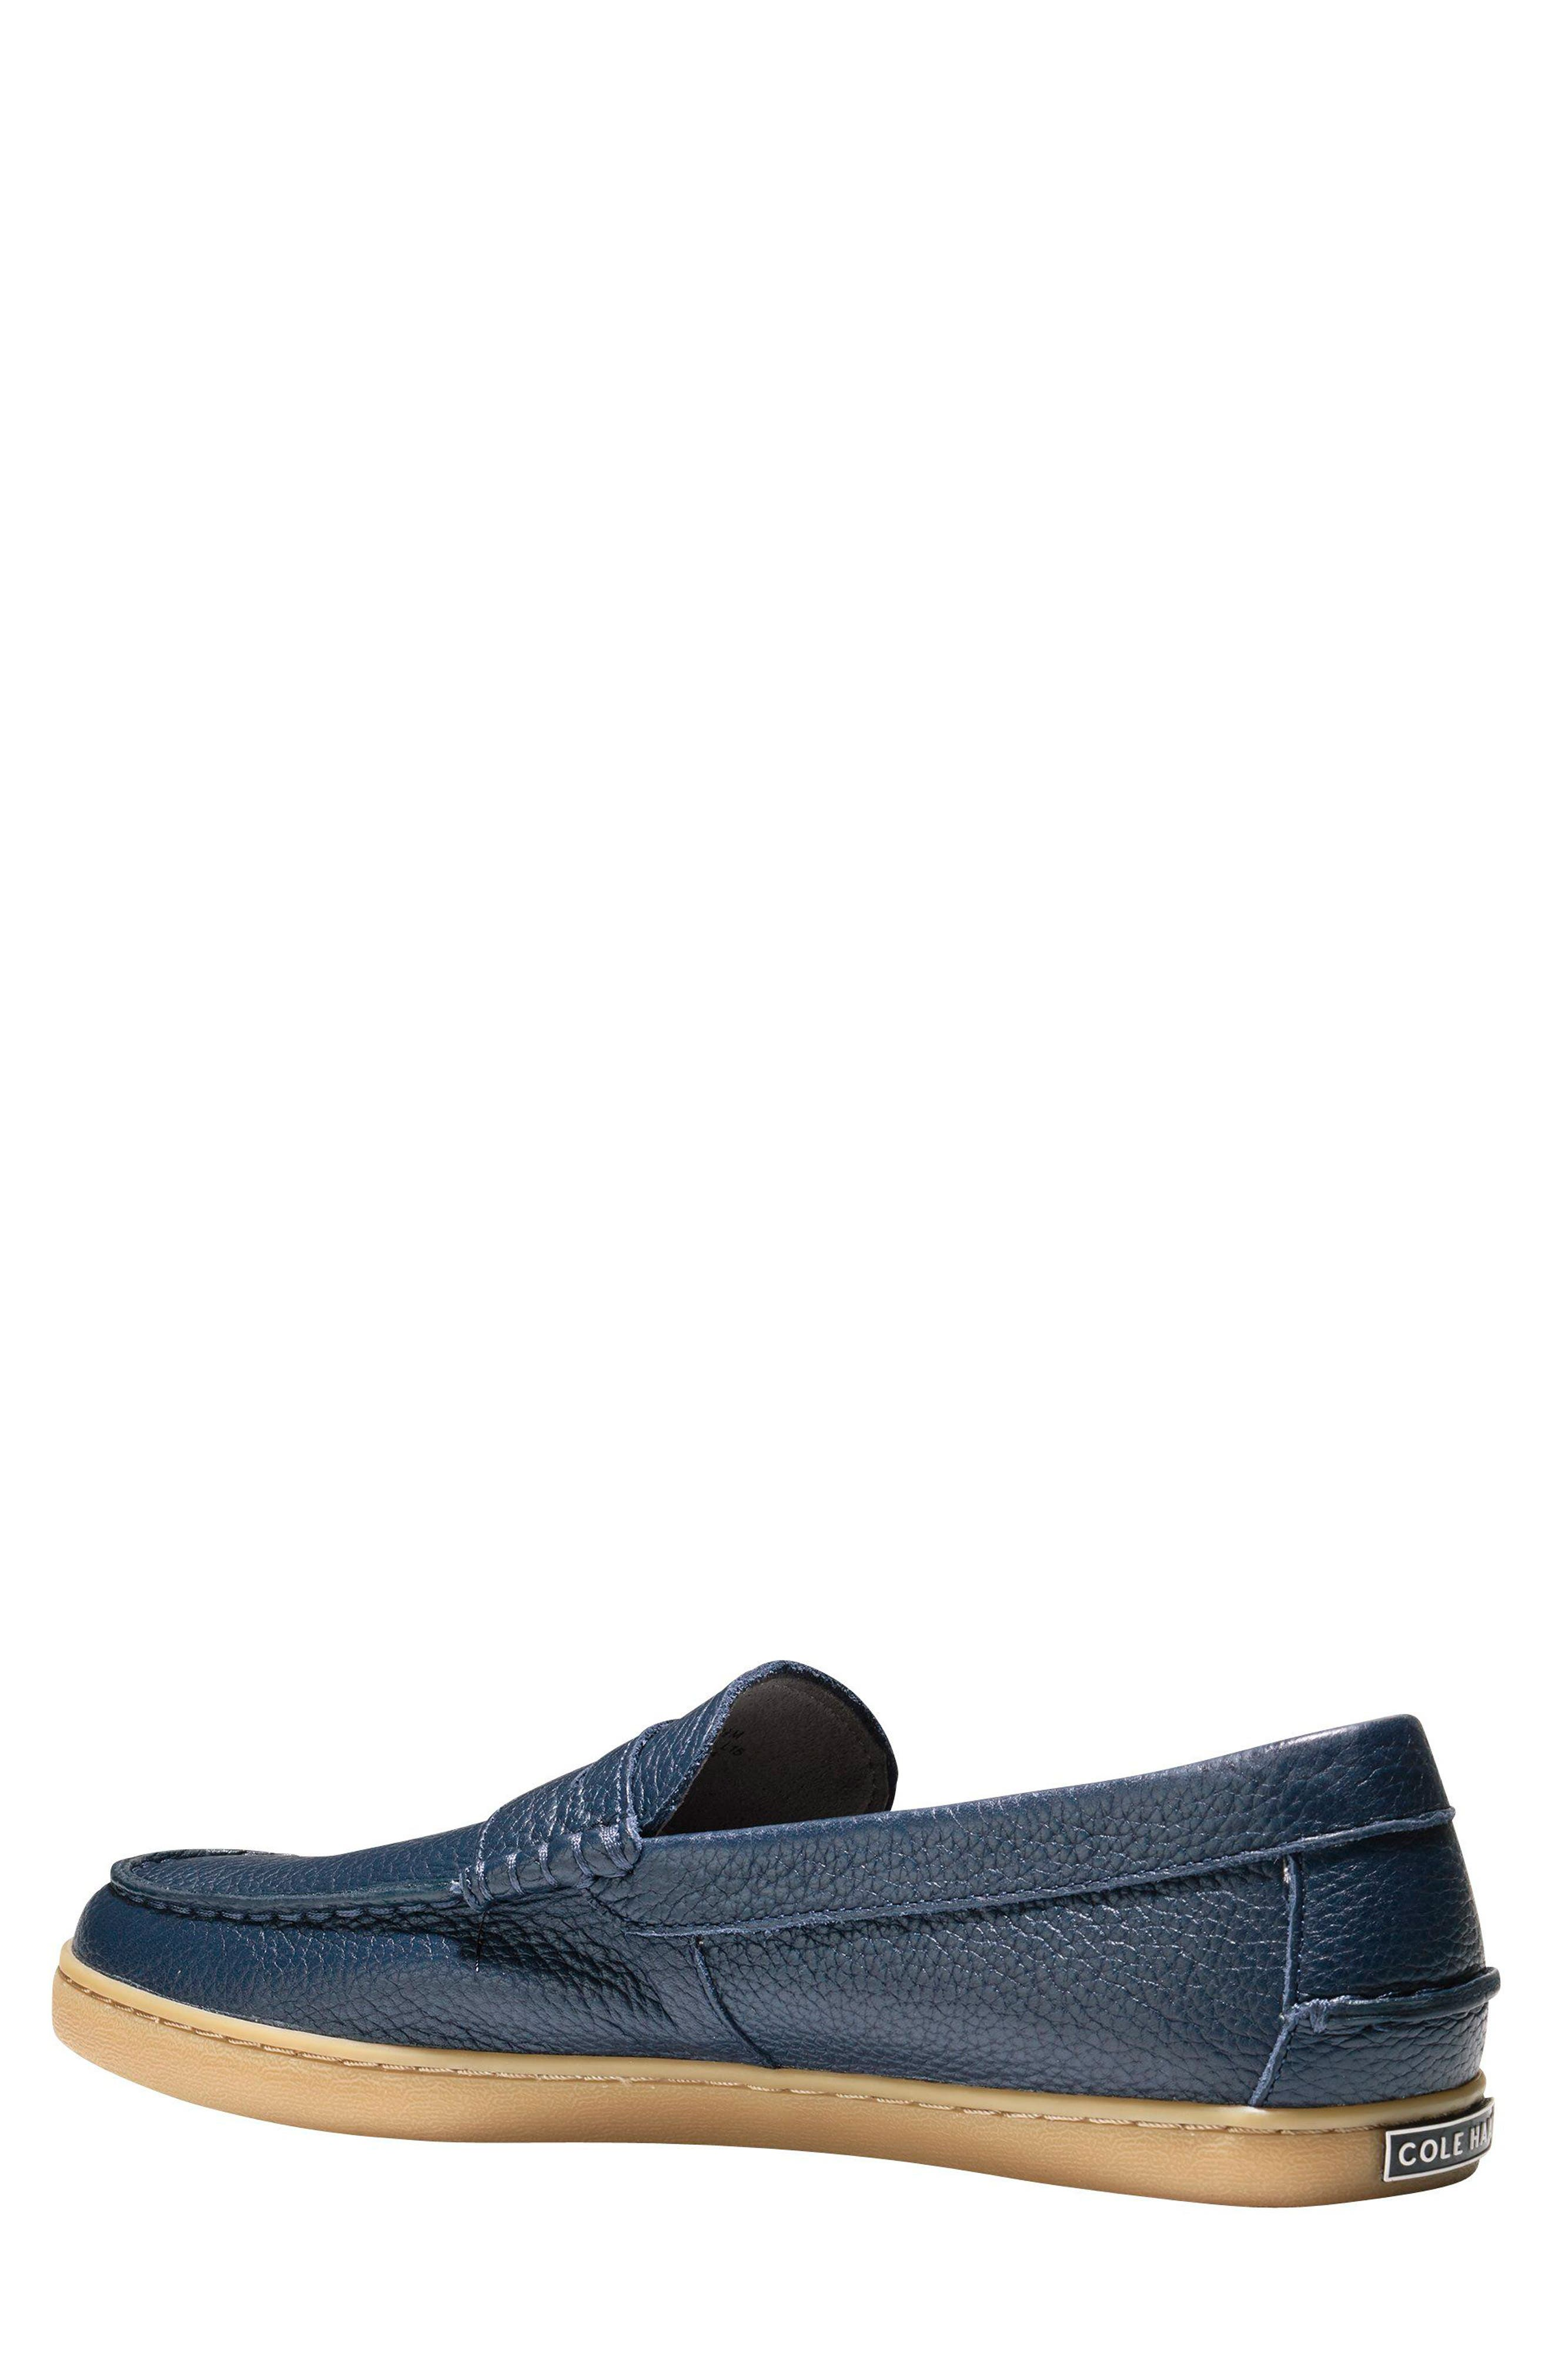 Alternate Image 2  - Cole Haan 'Pinch Weekend' Penny Loafer (Men)